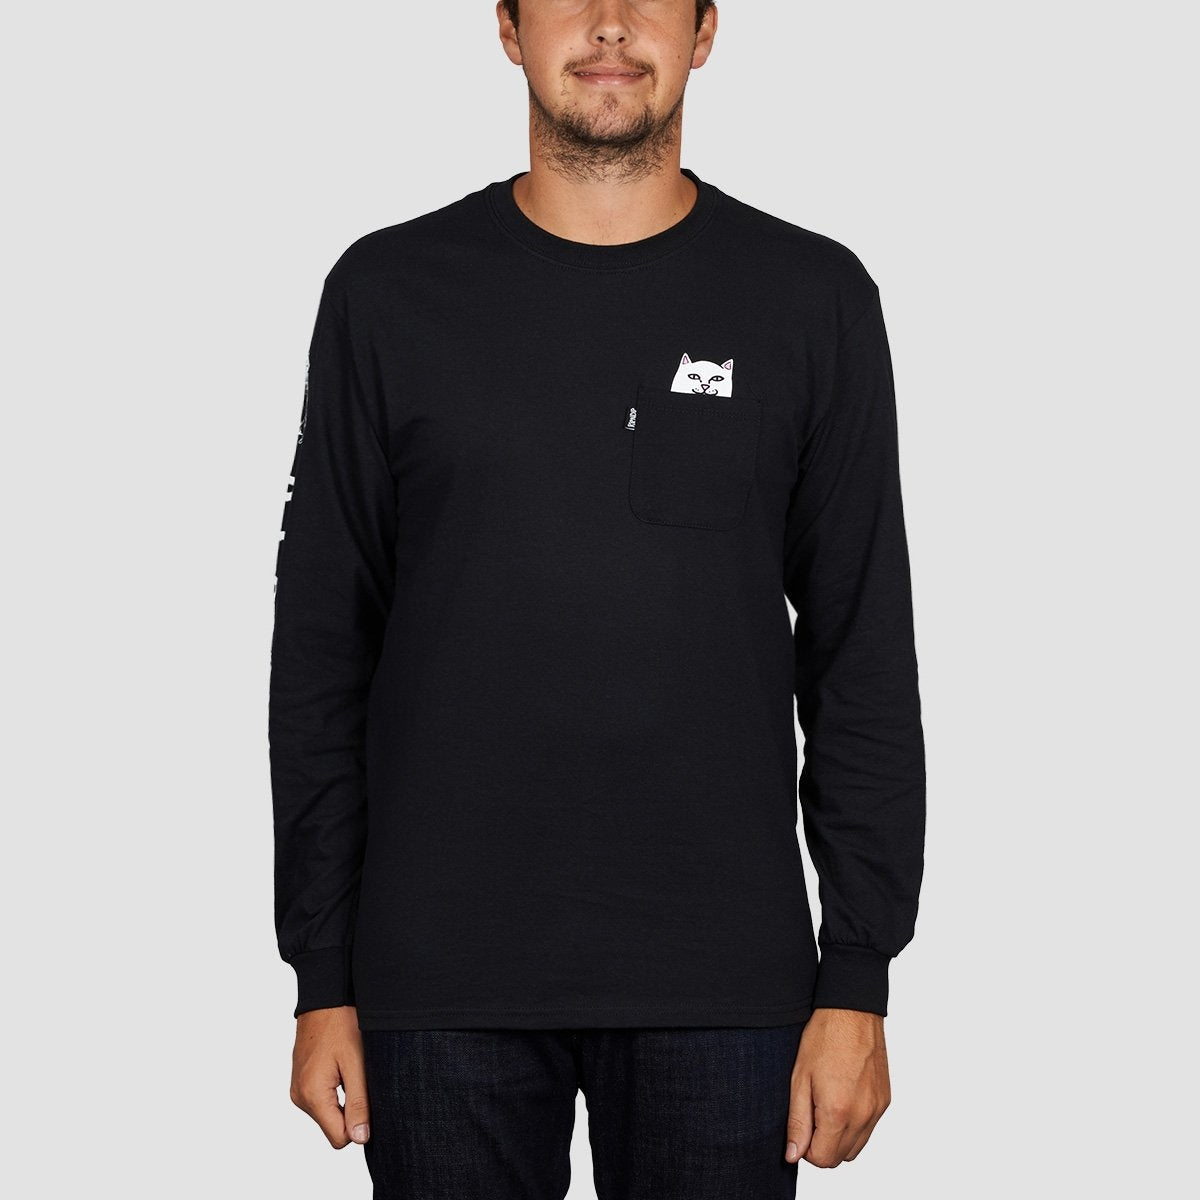 Ripndip Lord Nermal Longsleeve Pocket Tee Black - Clothing